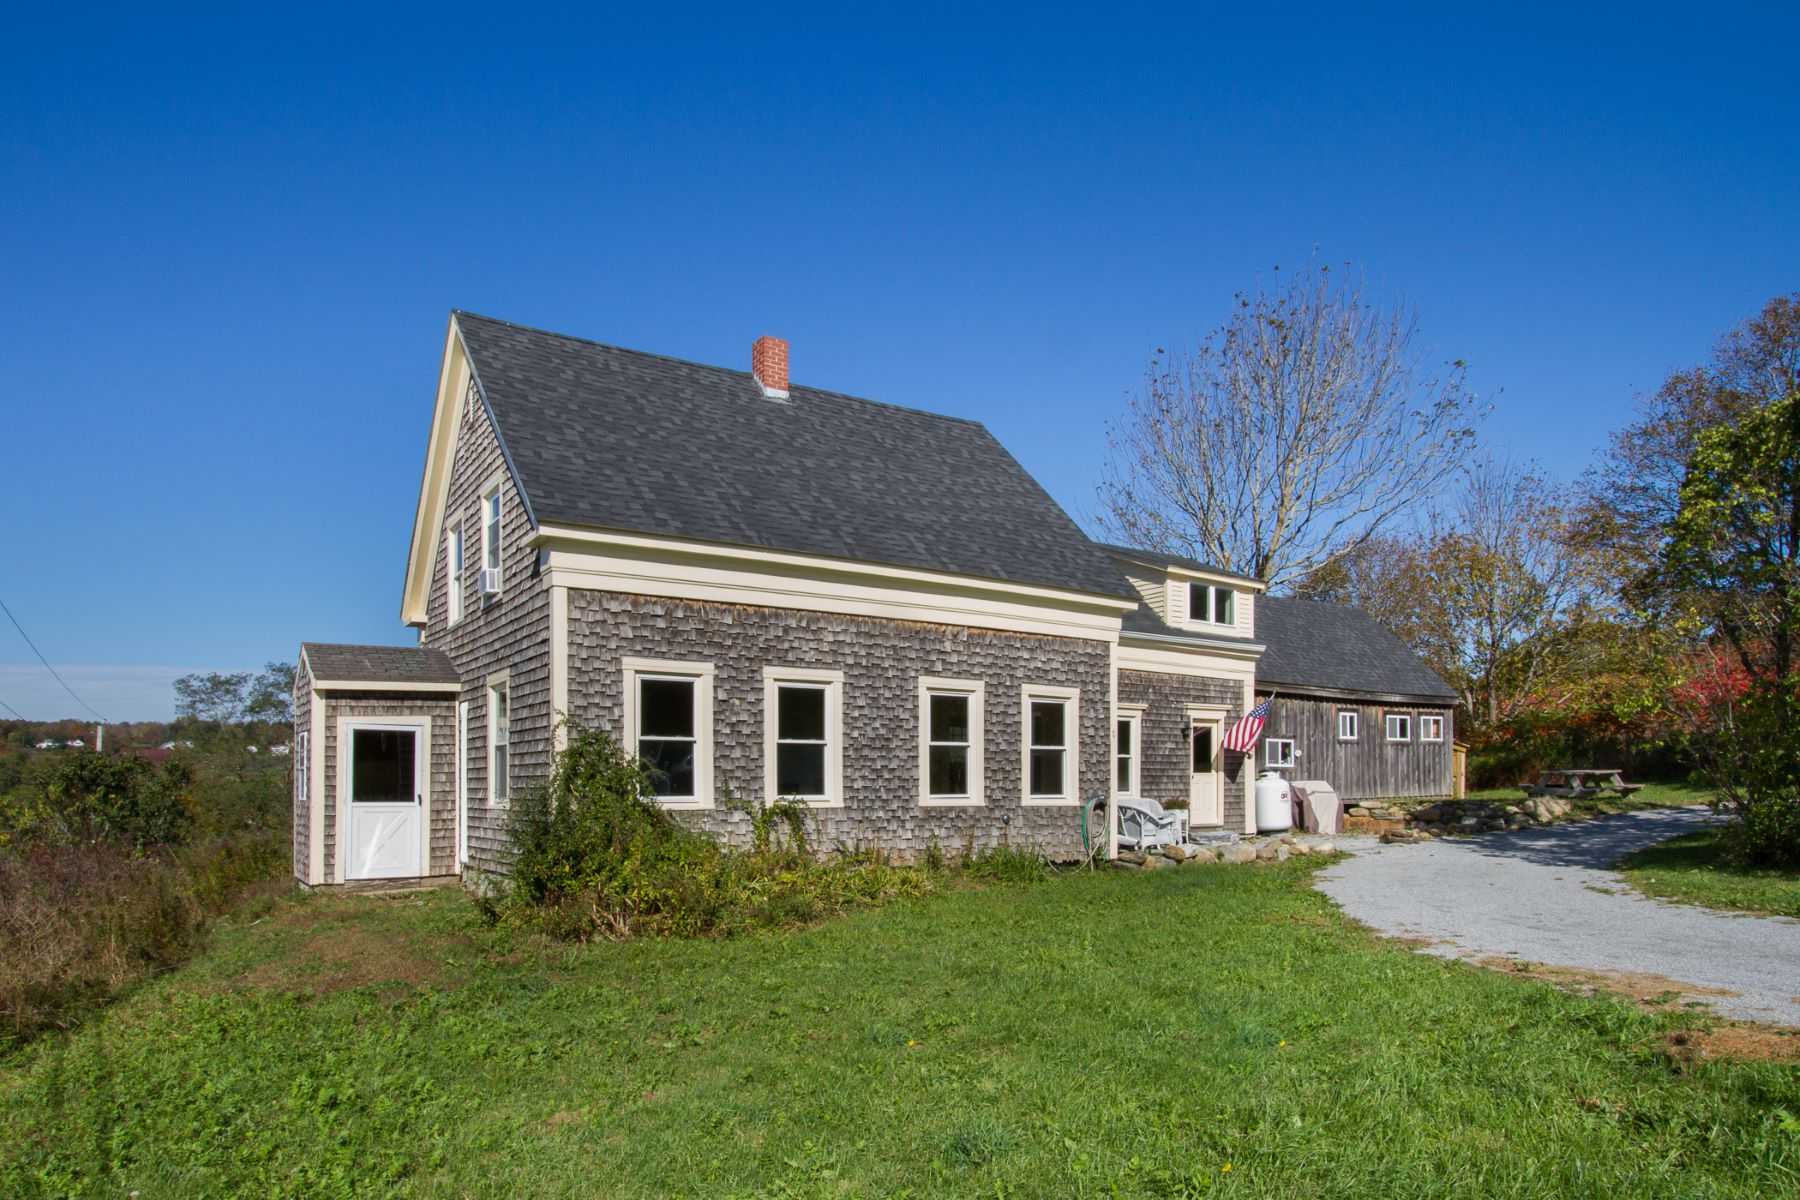 Single Family Home for Sale at 259 Talbot Ave Rockland, Maine, 04841 United States